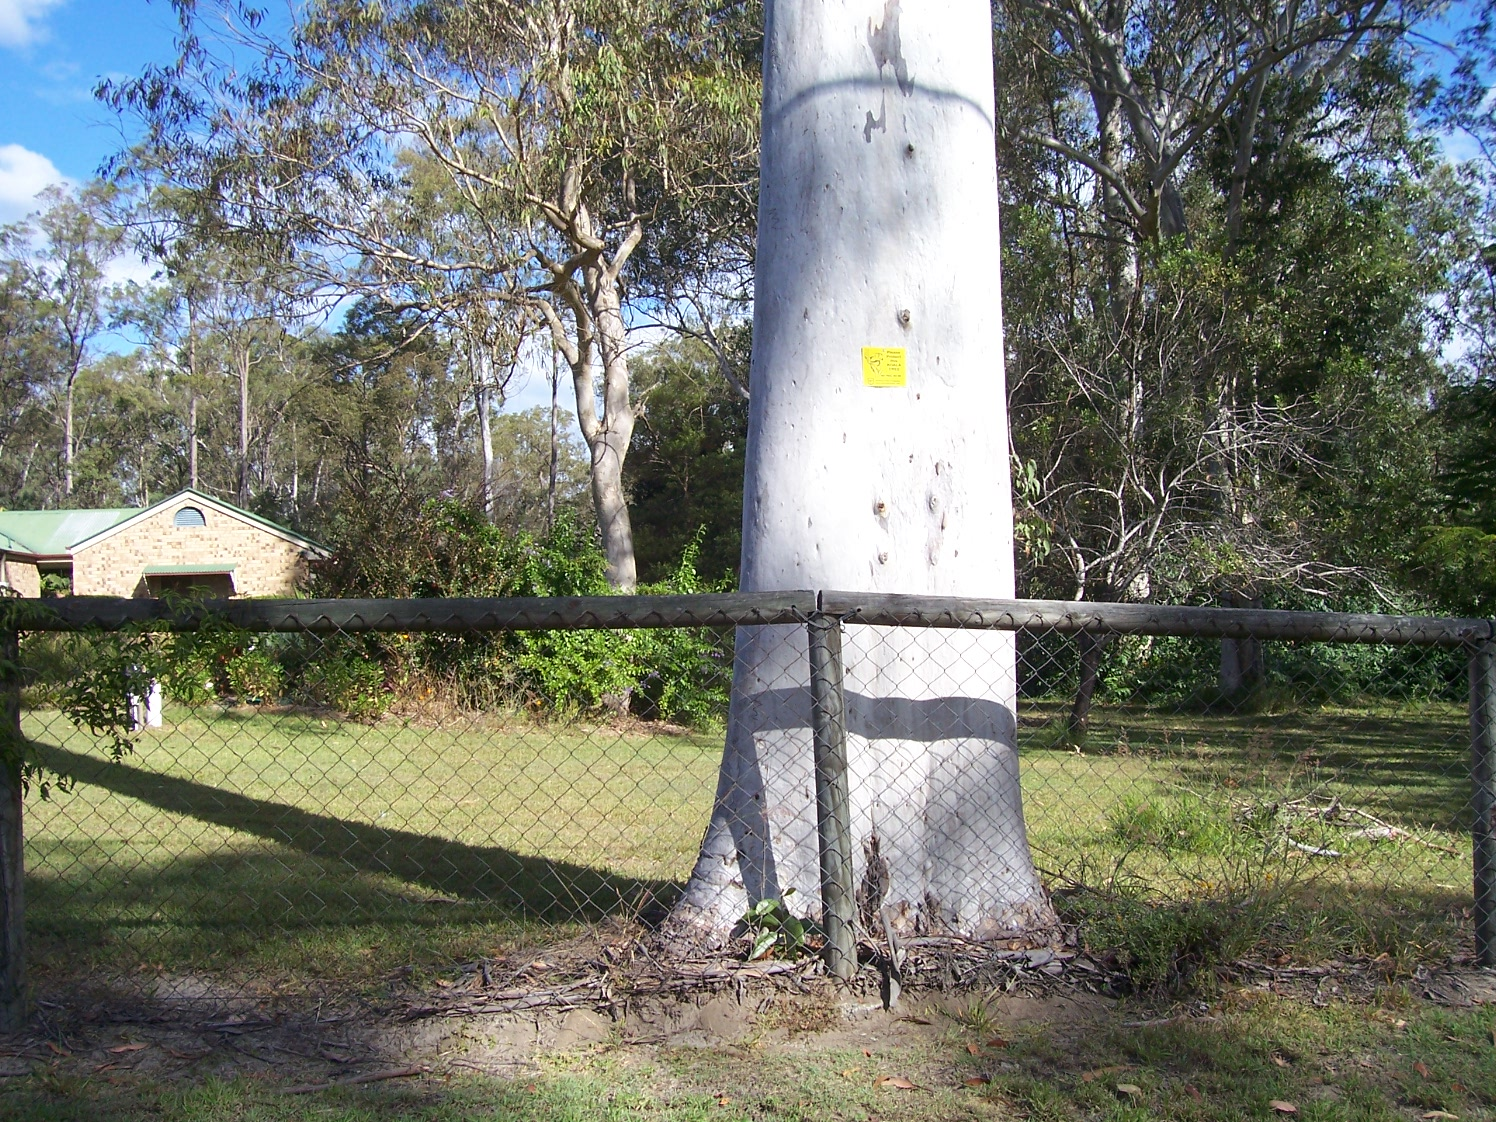 Koala Food Trees - TAGGED May 2012